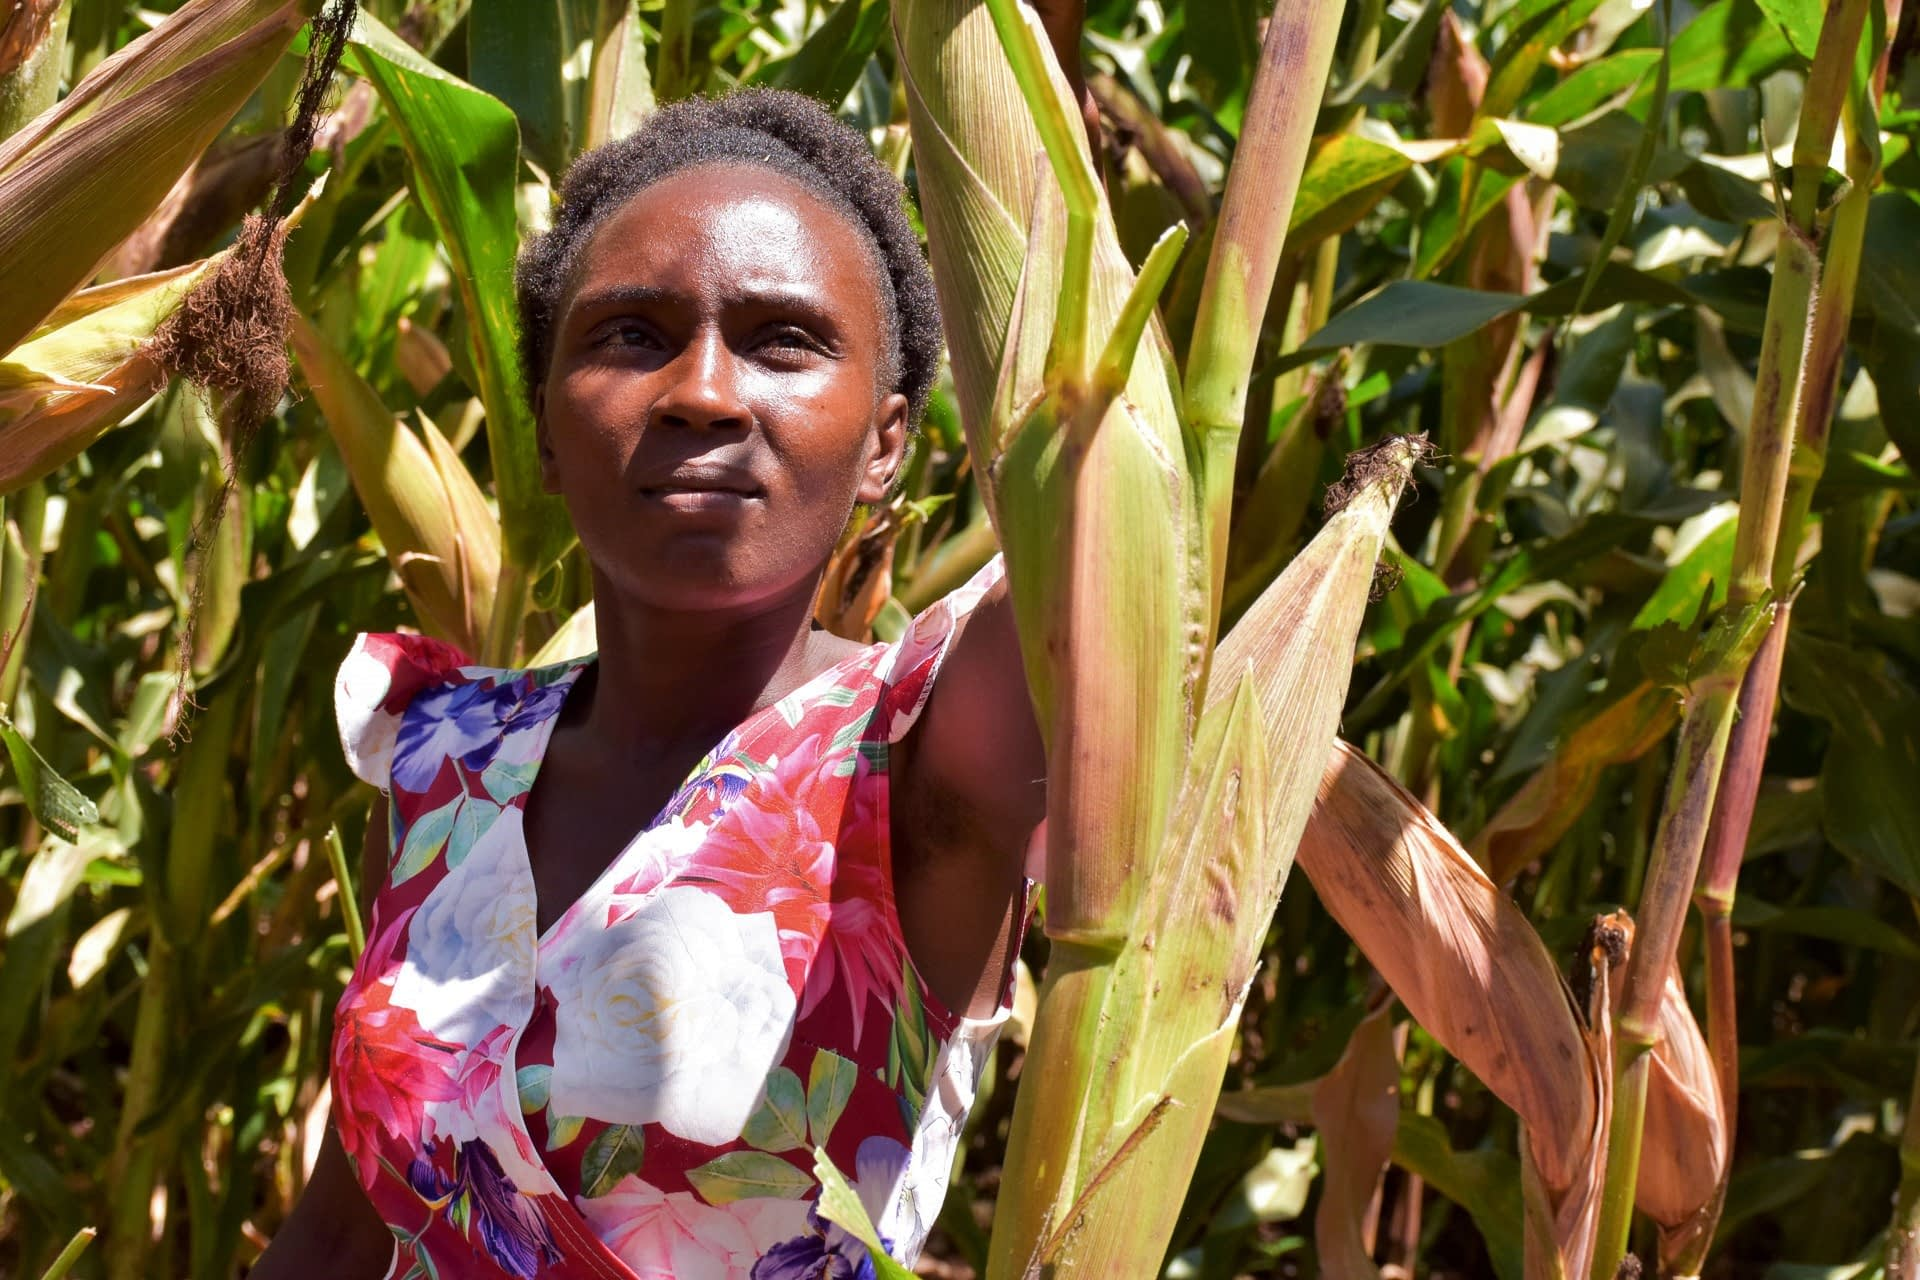 Nancy Wawira (29) stands among ripening maize cobs of high yielding, drought-tolerant maize varieties on a demonstration farm in Embu County, Kenya. Involving young people like Wawira helps to accelerate the adoption of improved stress-tolerant maize varieties. (Photo: Joshua Masinde/CIMMYT)